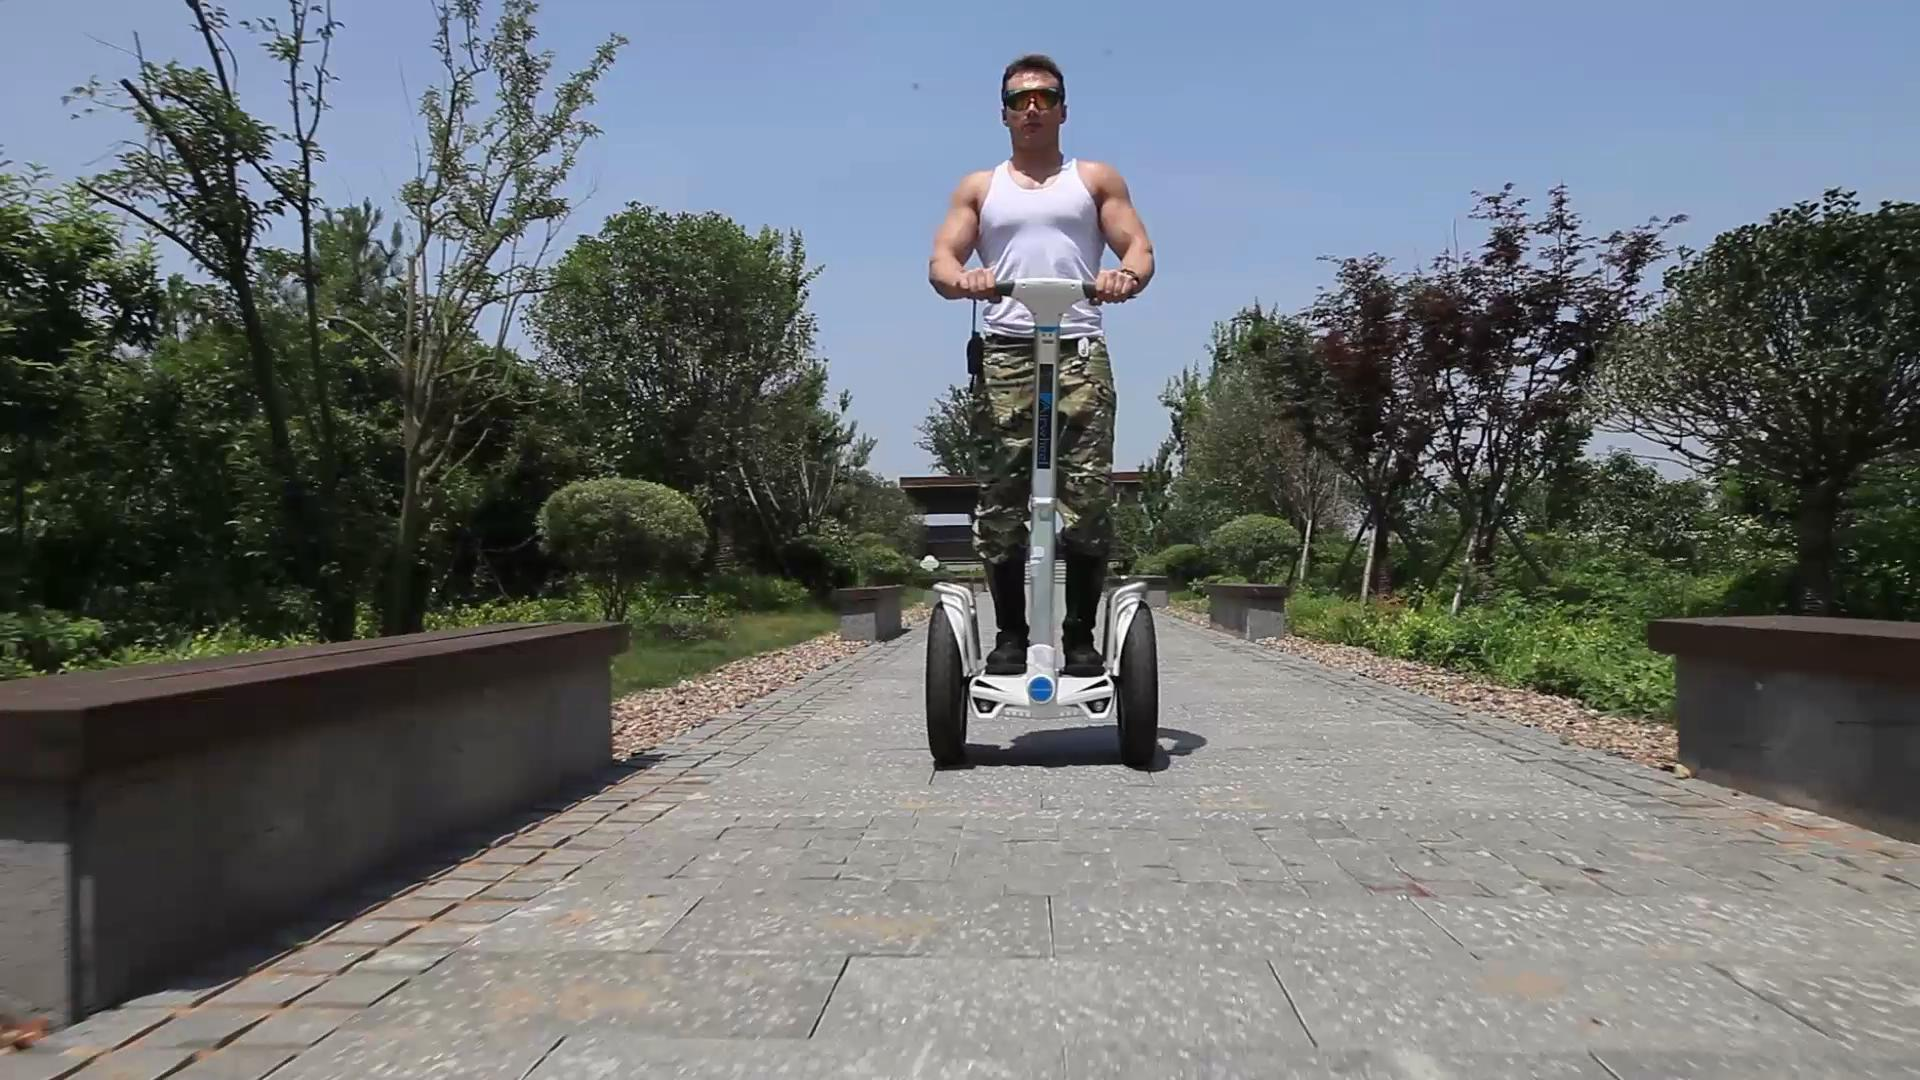 S5 2 wheel self-balancing scooter